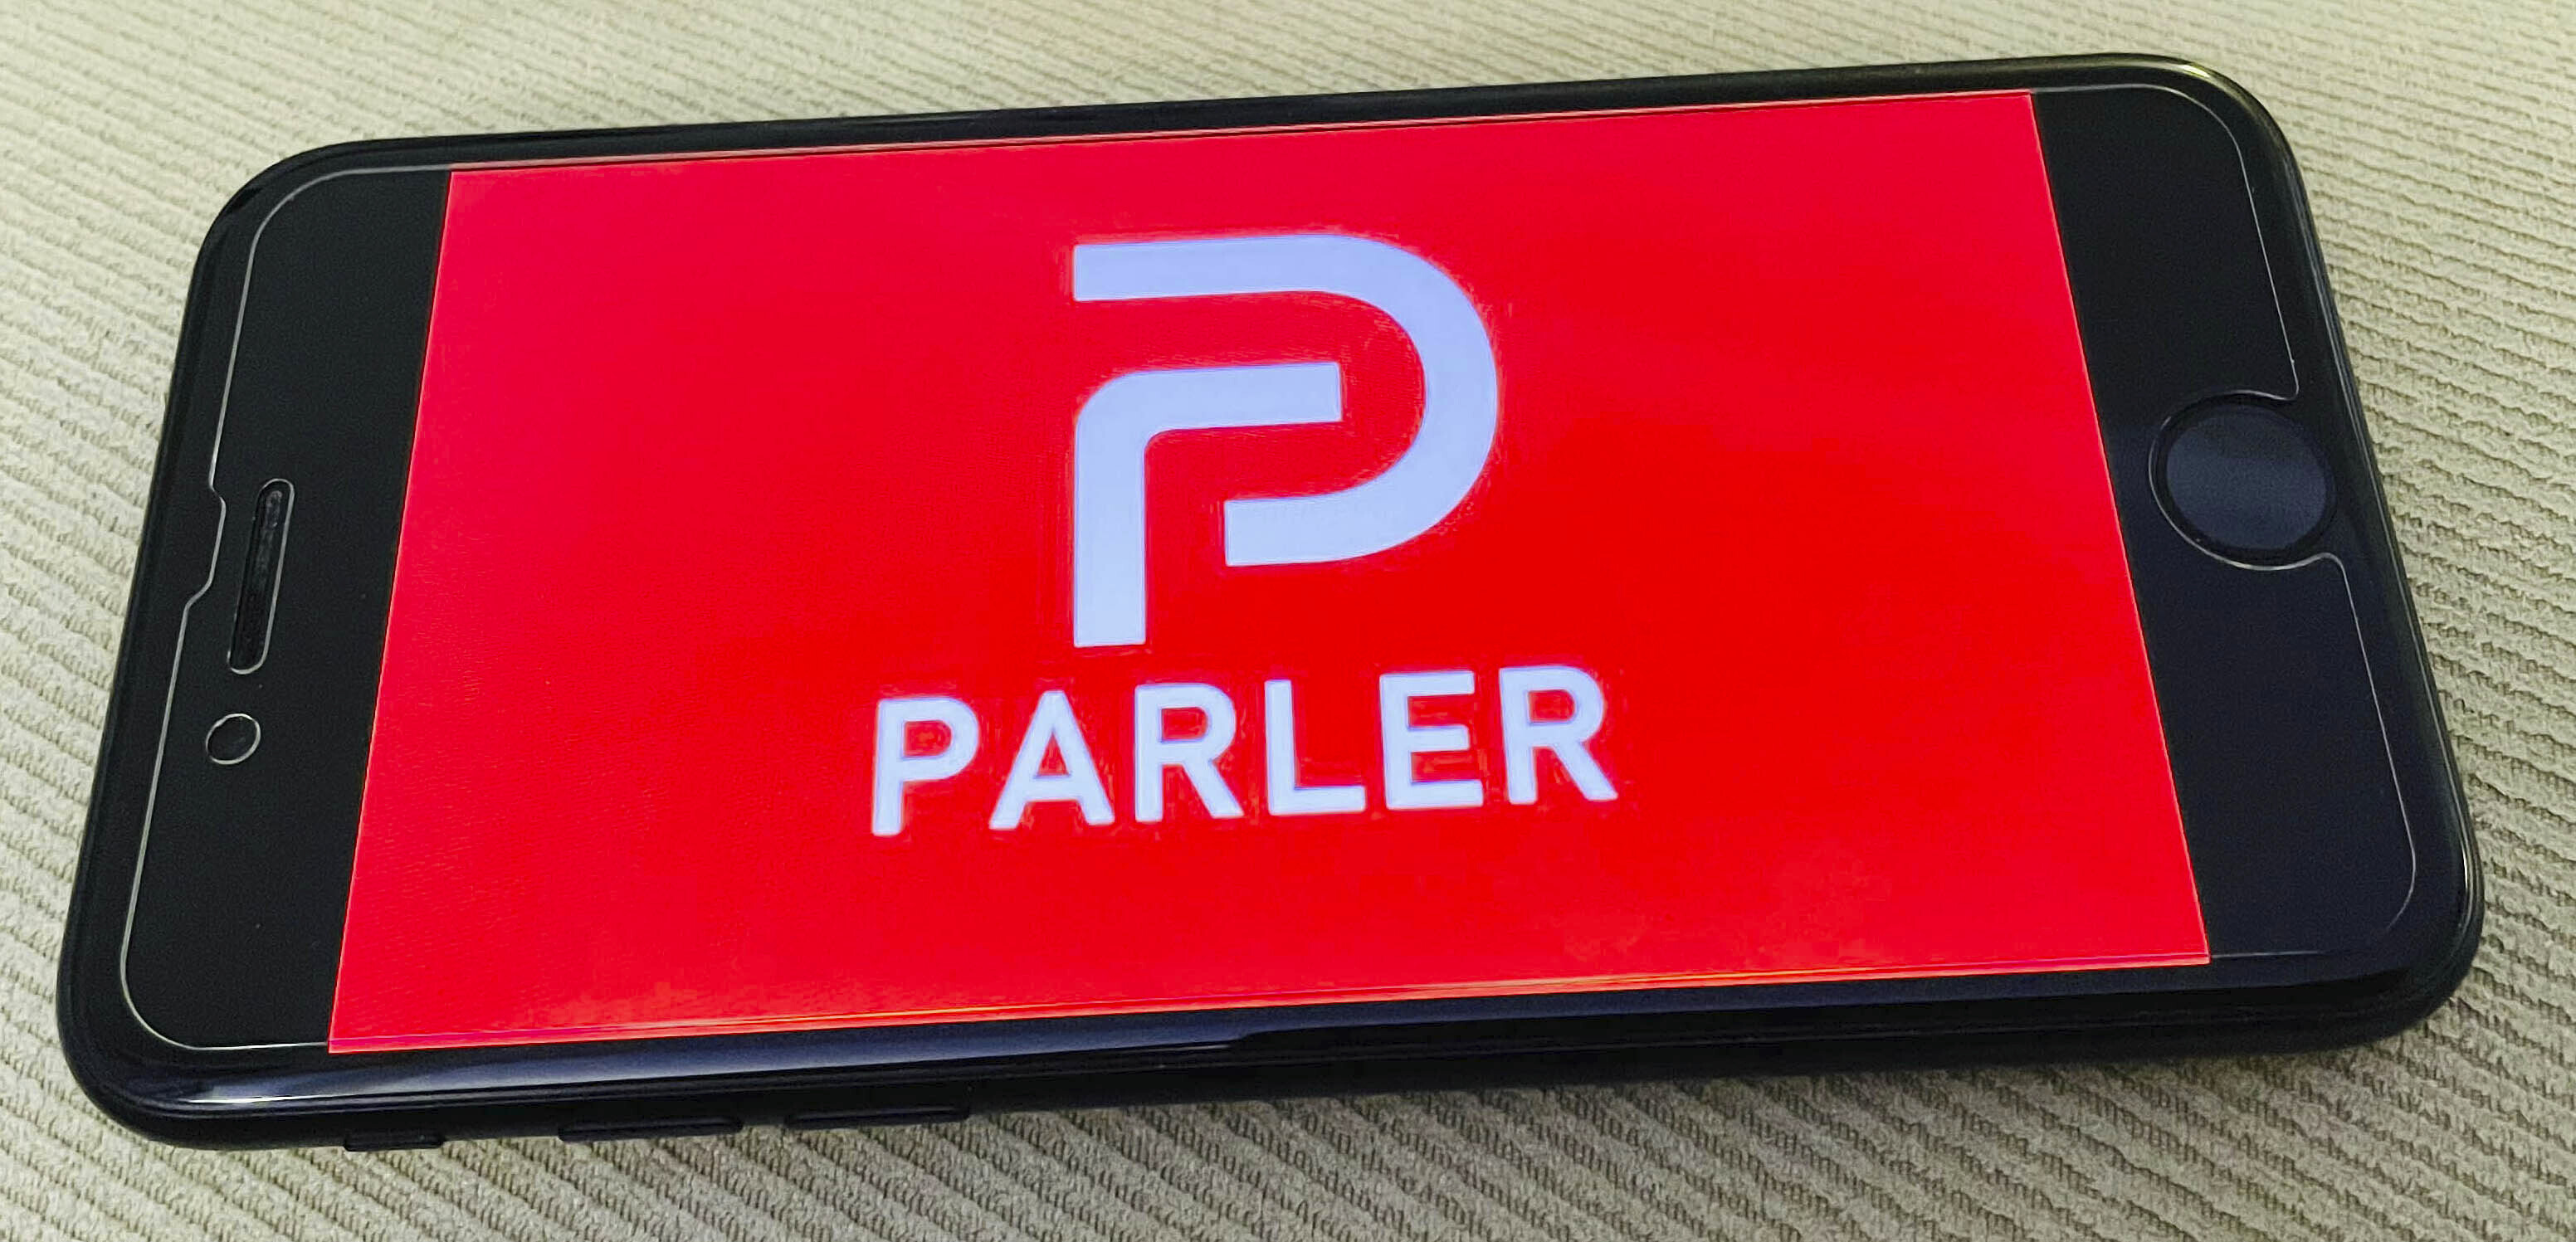 New Parler CEO: We're Committed to Free Speech, Big Tech Doesn't Run Our Servers